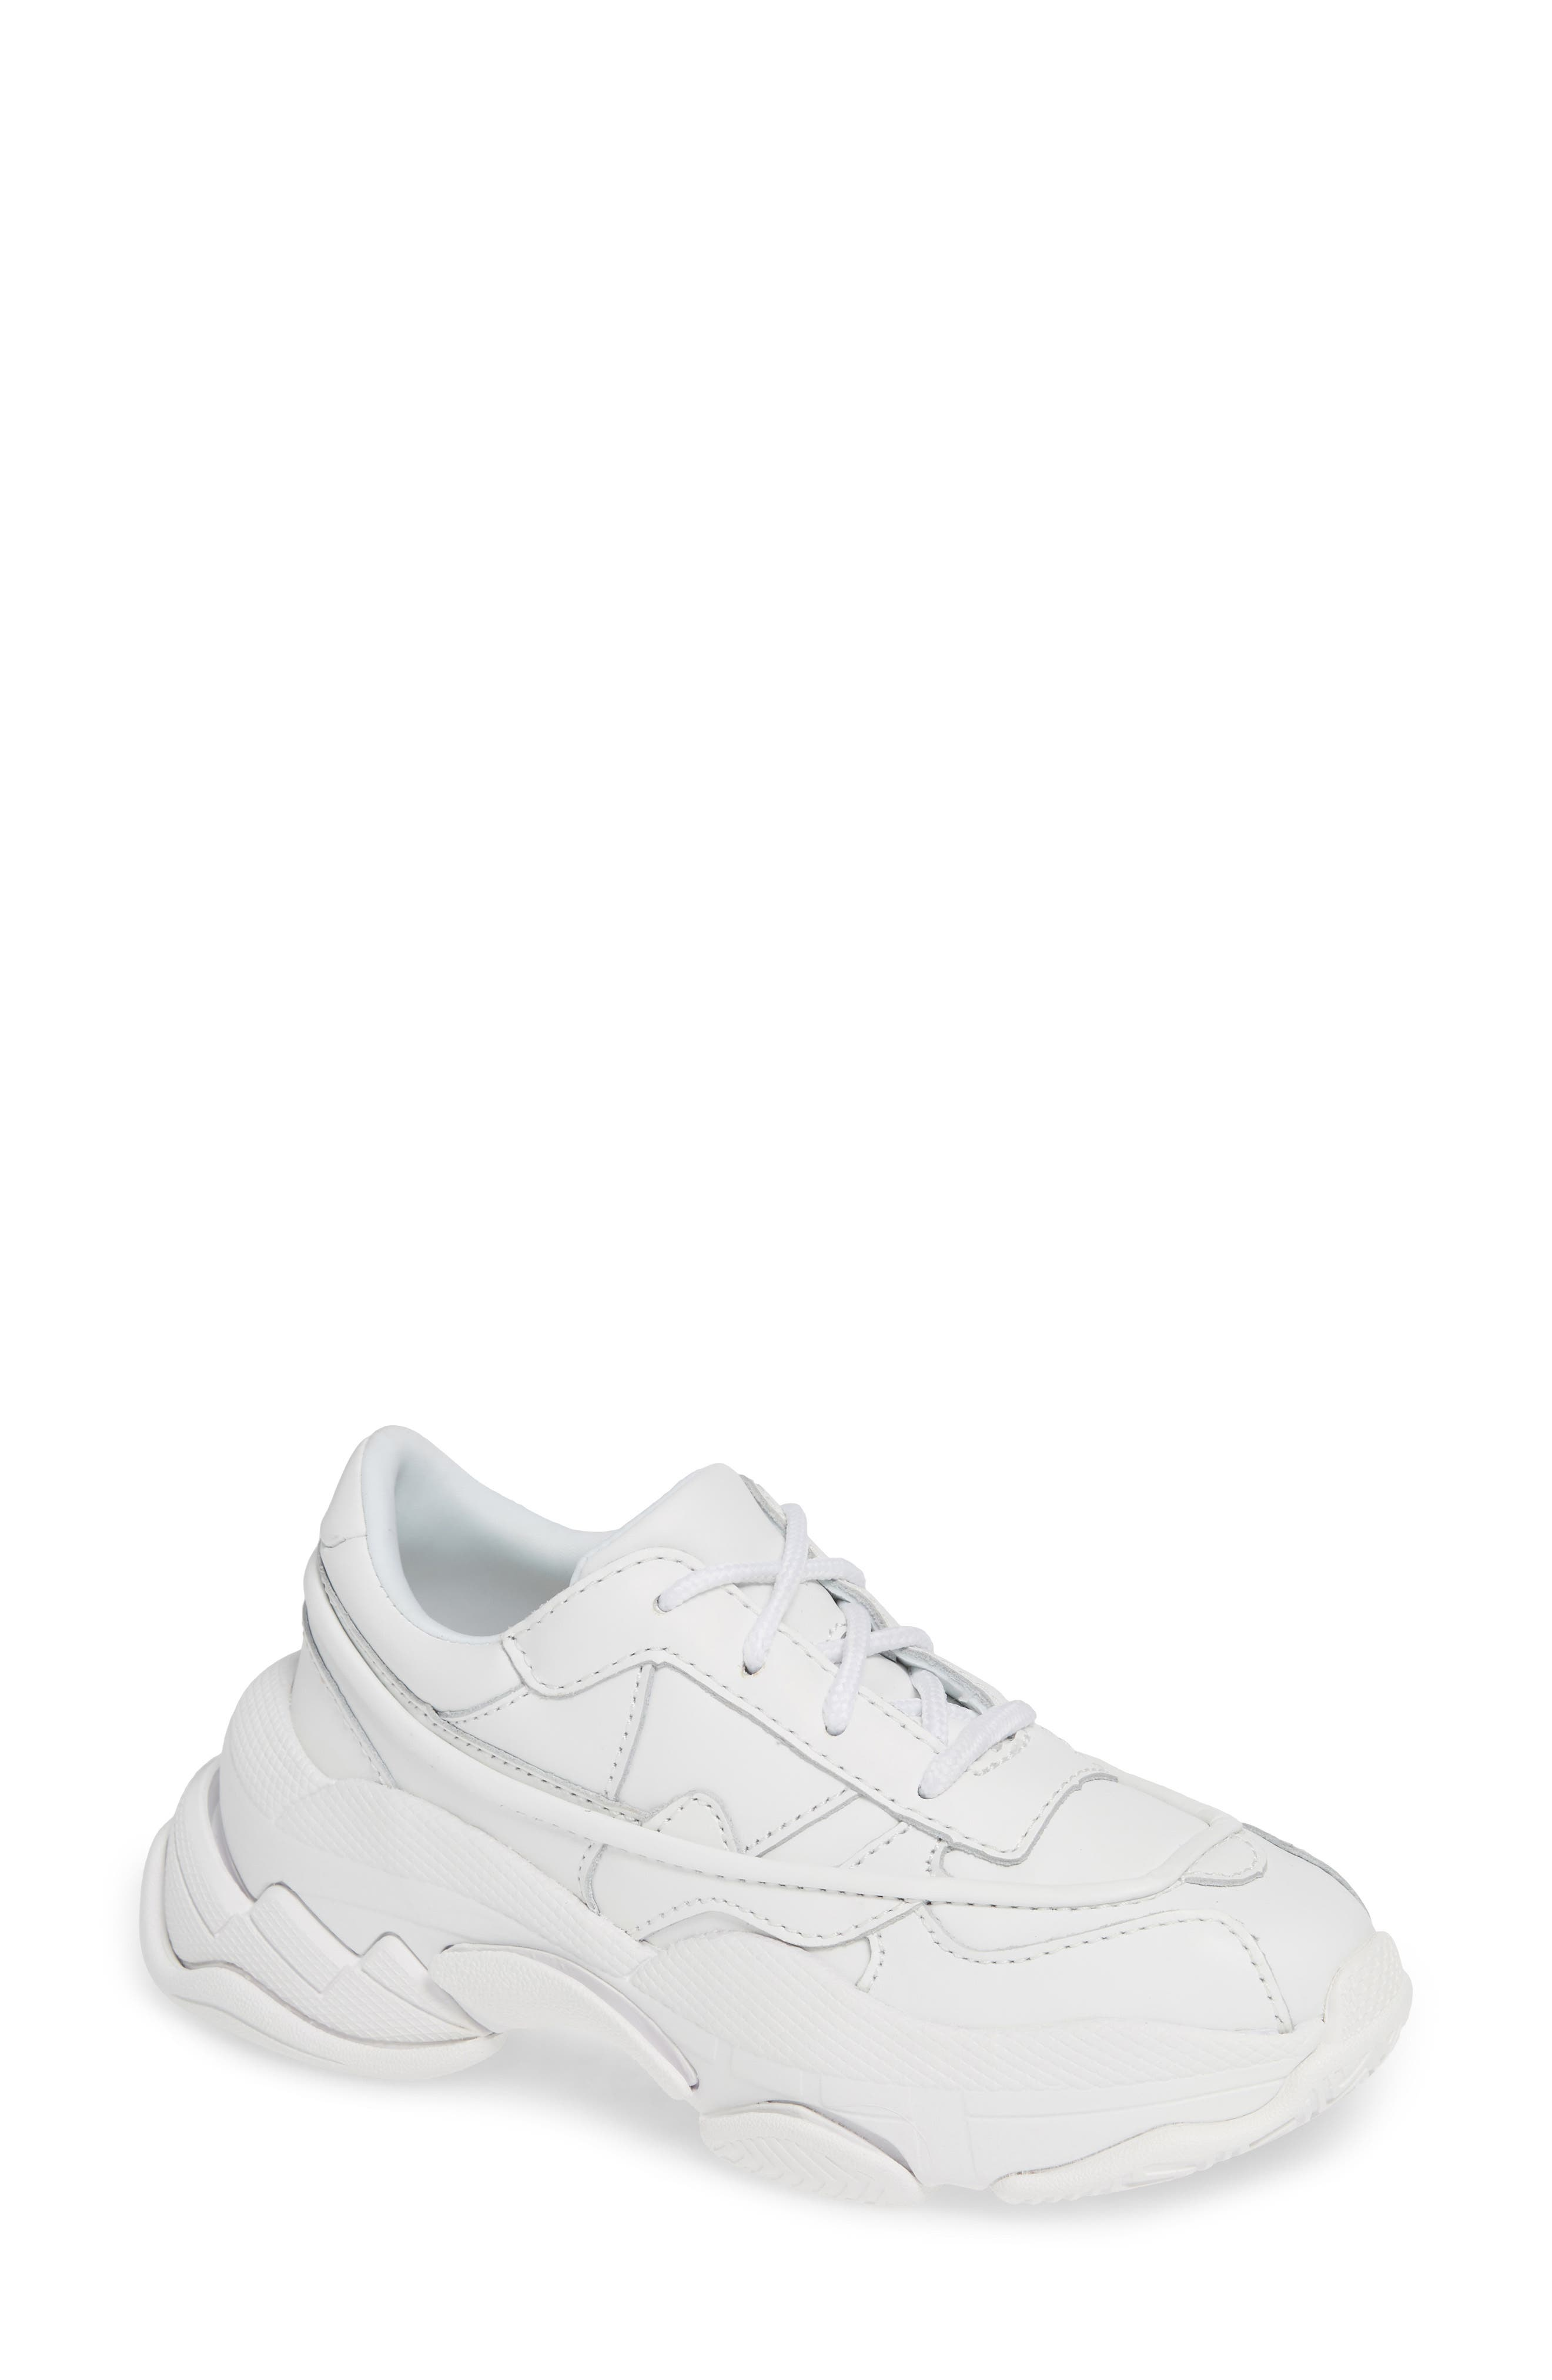 Malware Wedge Sneaker,                             Main thumbnail 1, color,                             WHITE